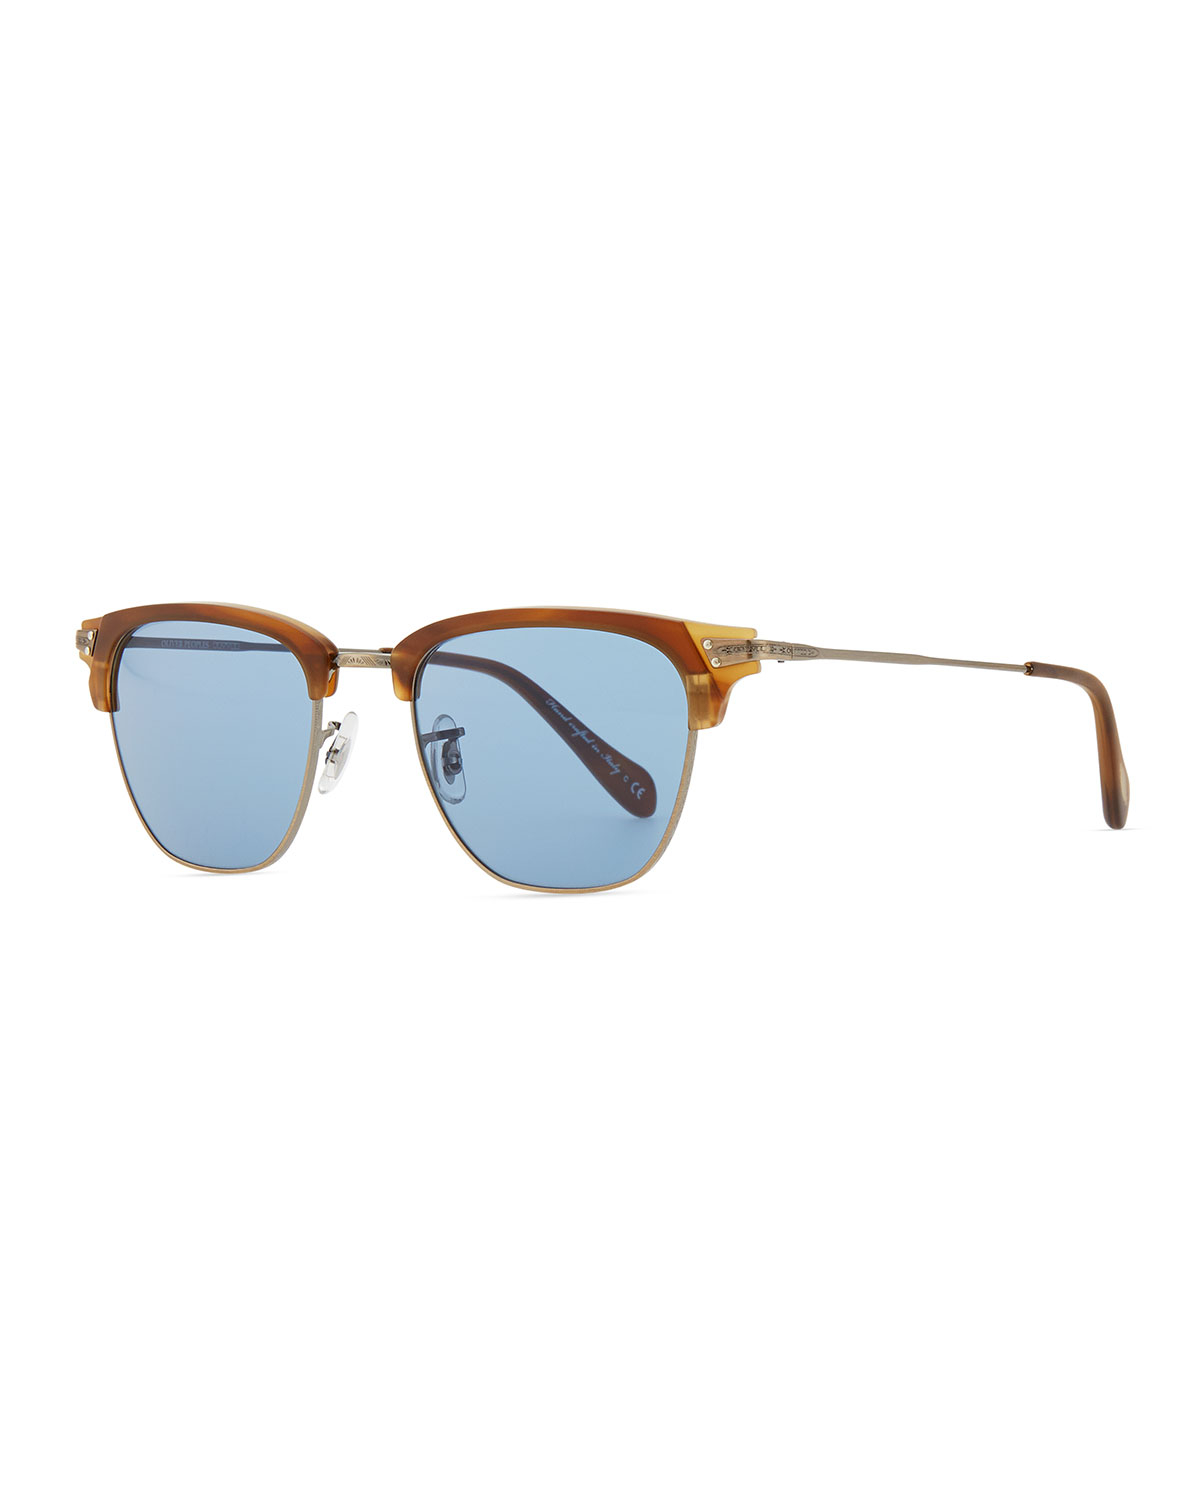 Lyst - Oliver Peoples Mens Banks Half-rim Sunglasses in Blue for Men